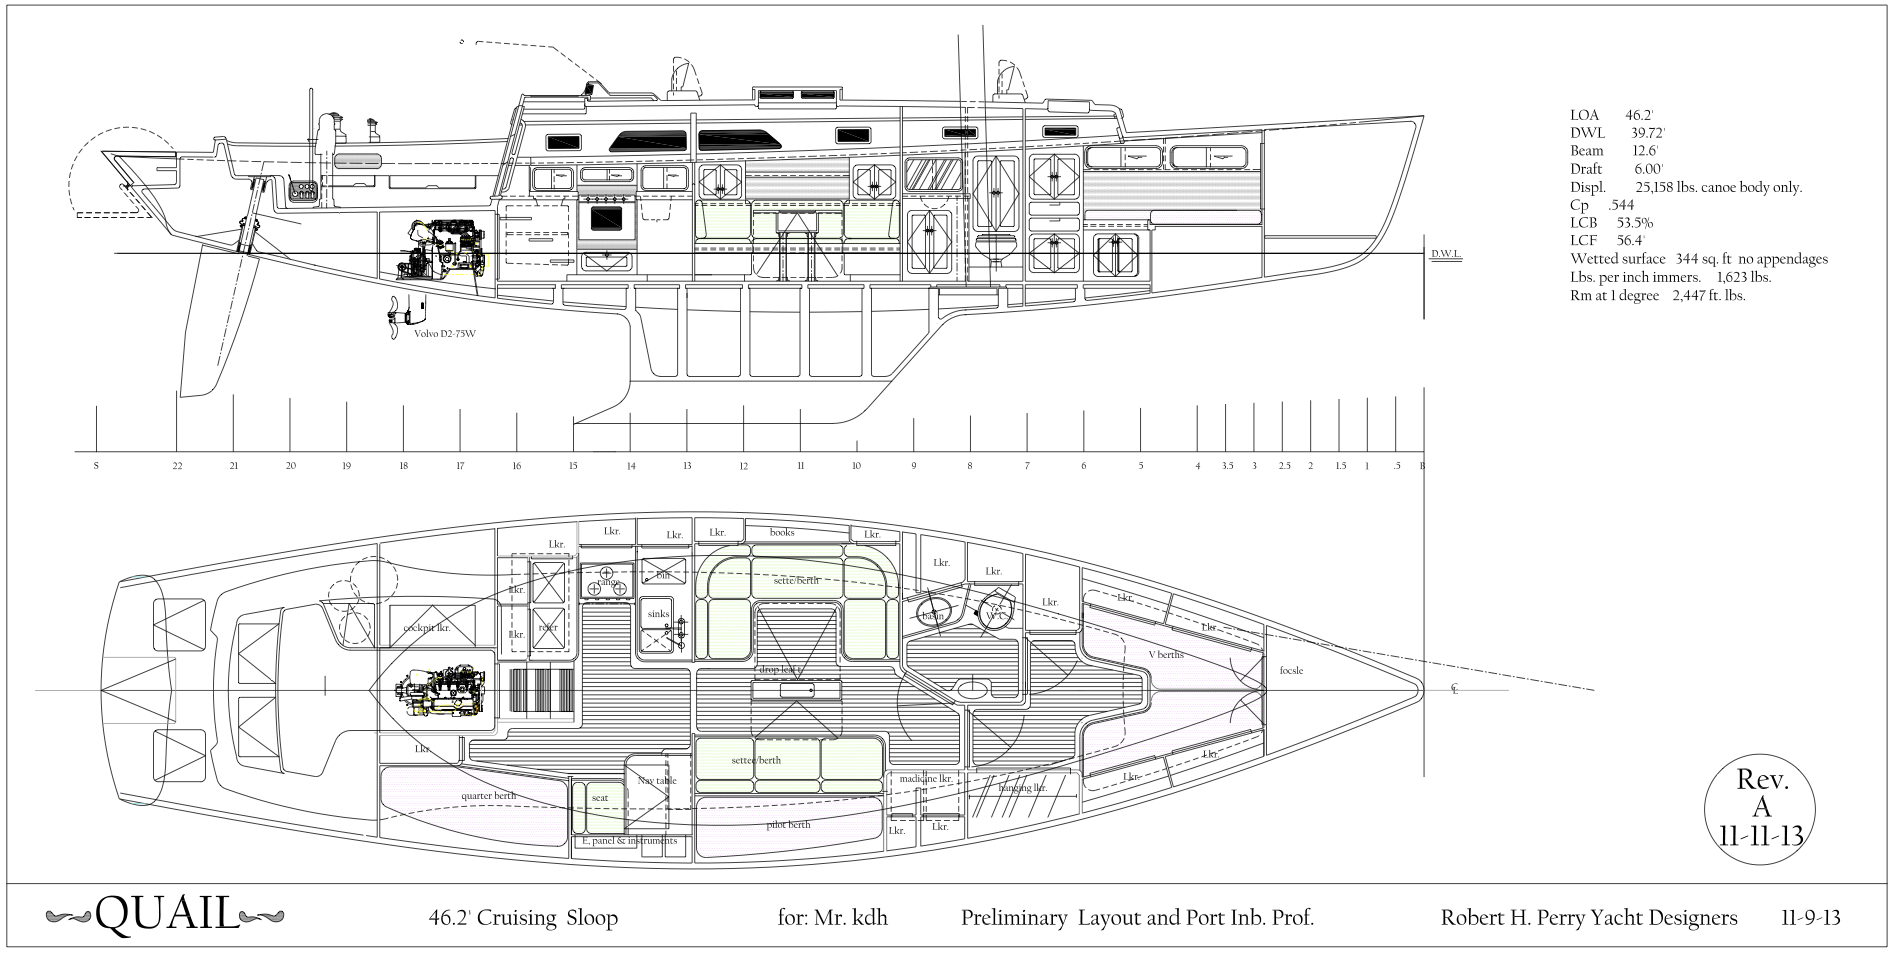 Art Line Yacht Design : Robert h perry yacht designers inc currently in design